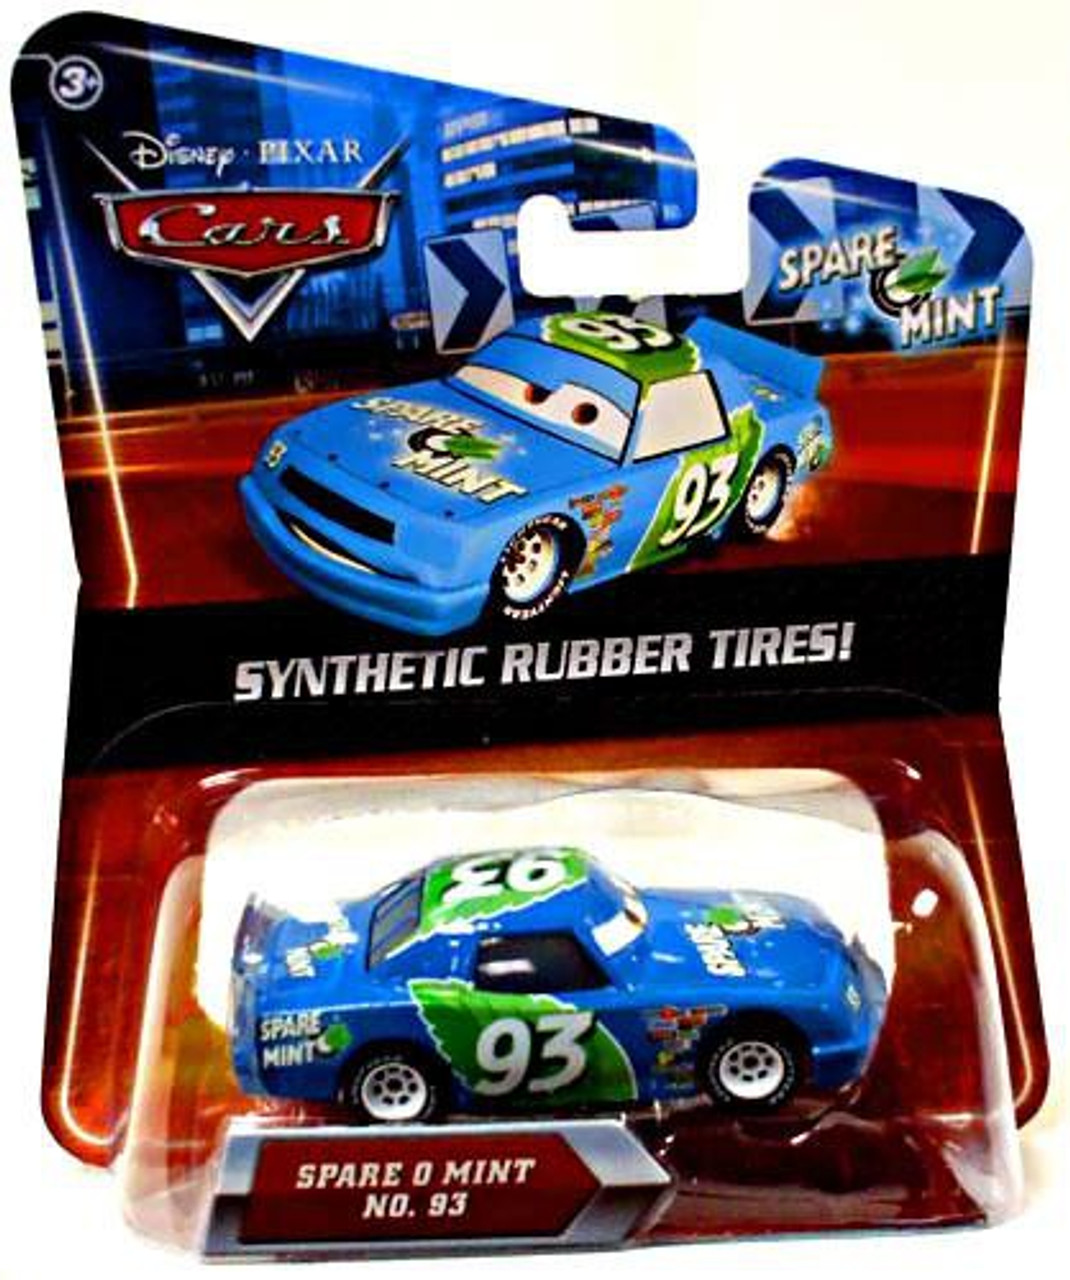 Disney Cars Synthetic Rubber Tires Spare O Mint Exclusive Diecast Car